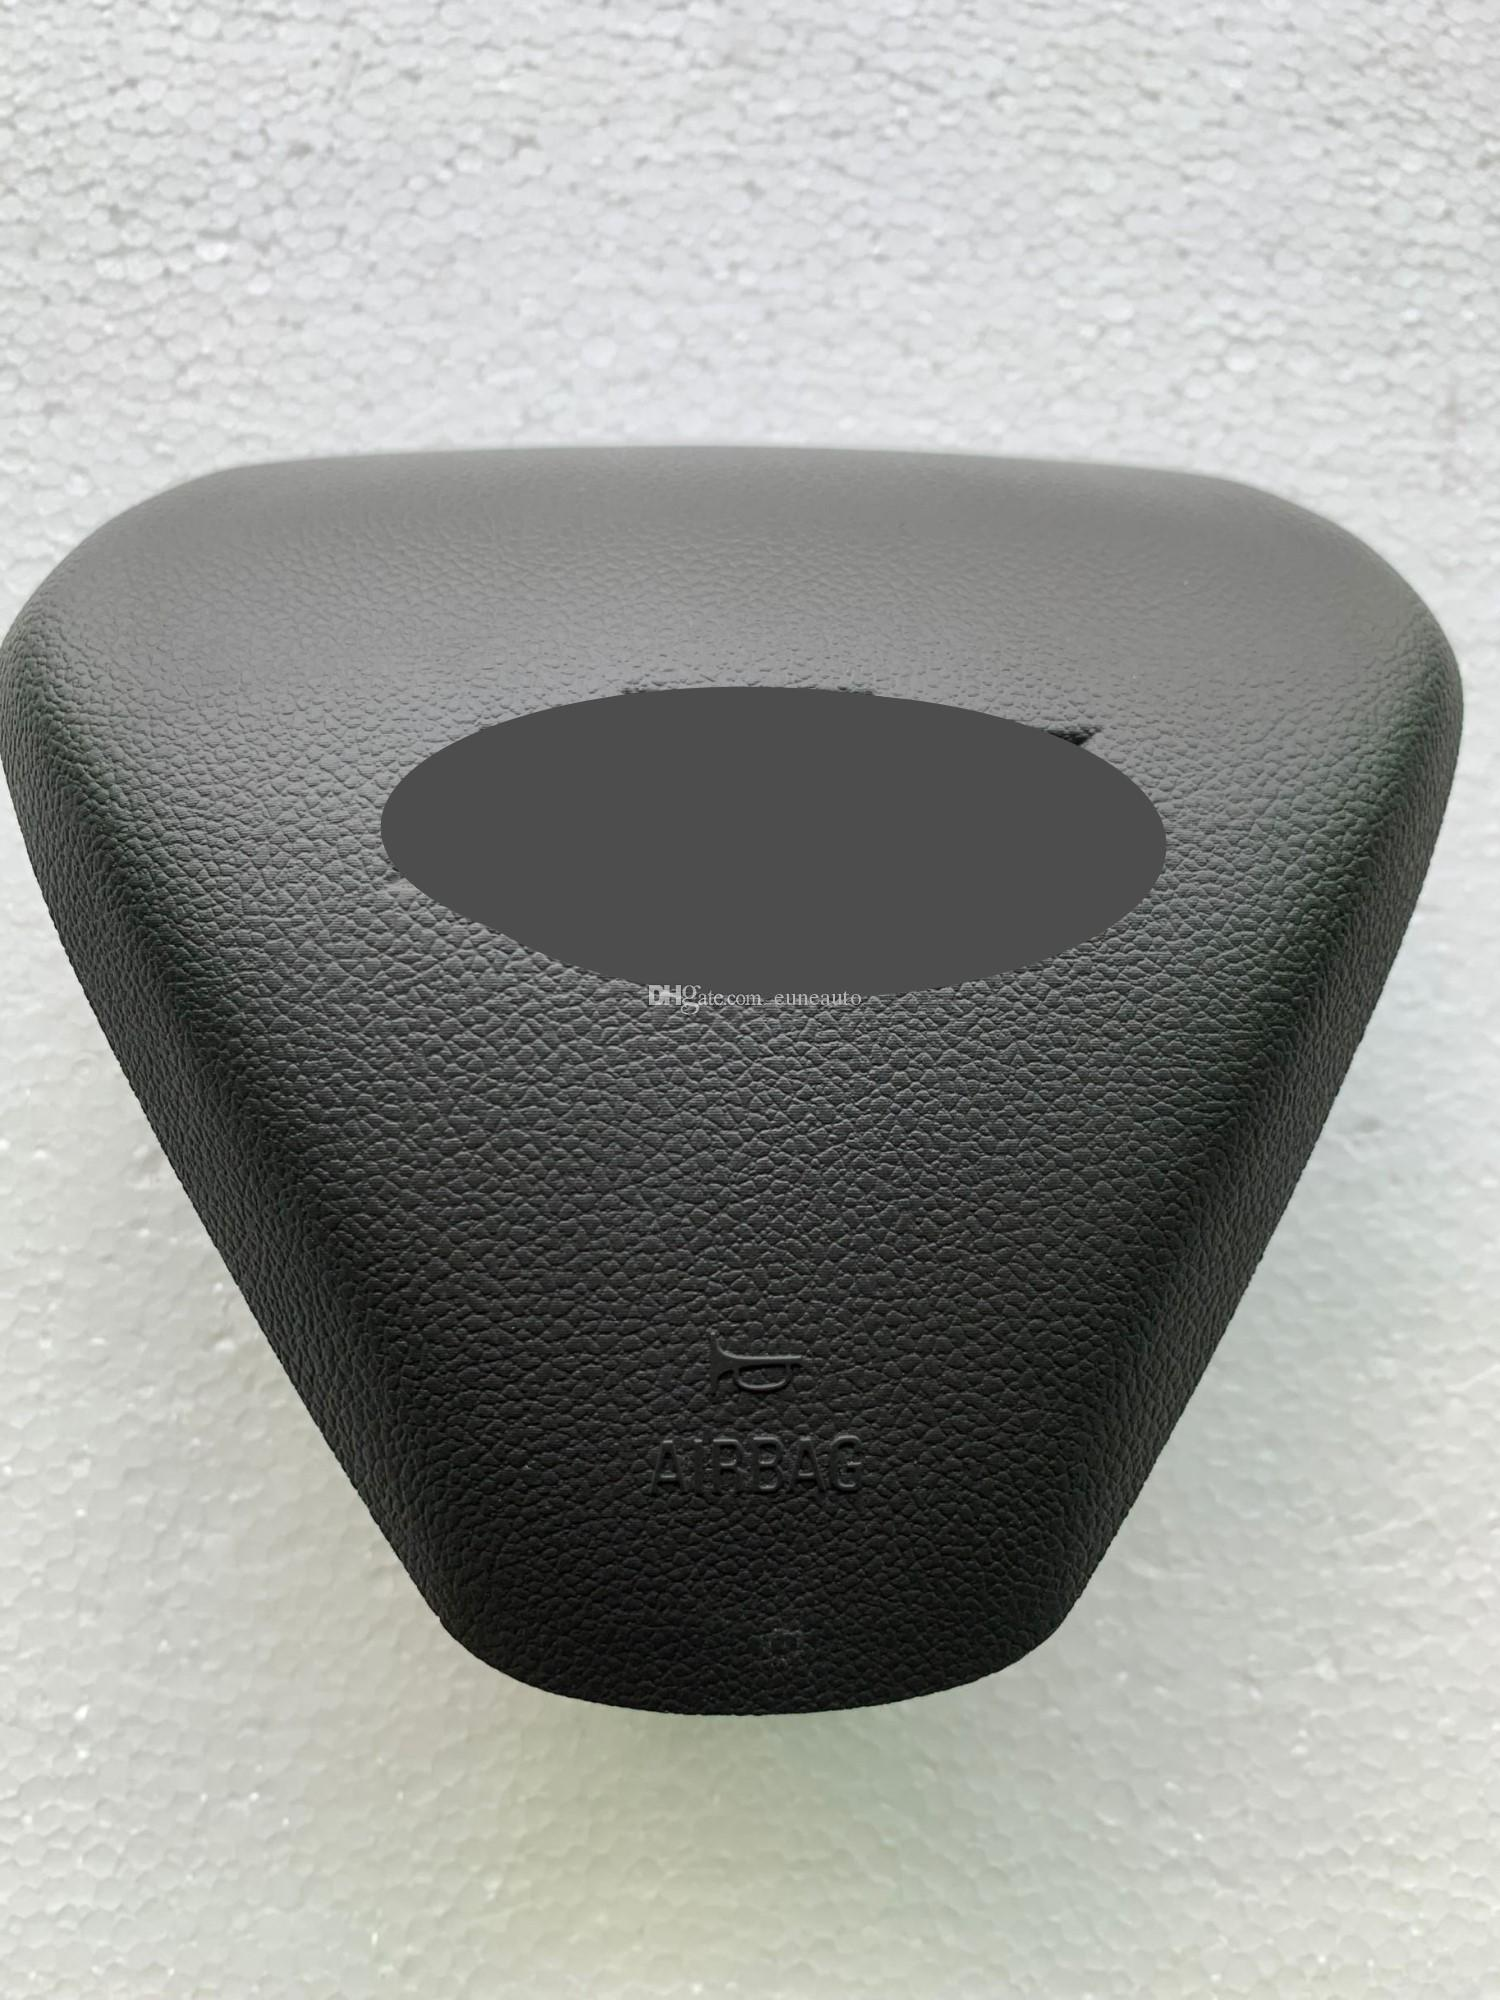 SRS Steering Wheel Driver airbag cover for Chevrolet Malibu